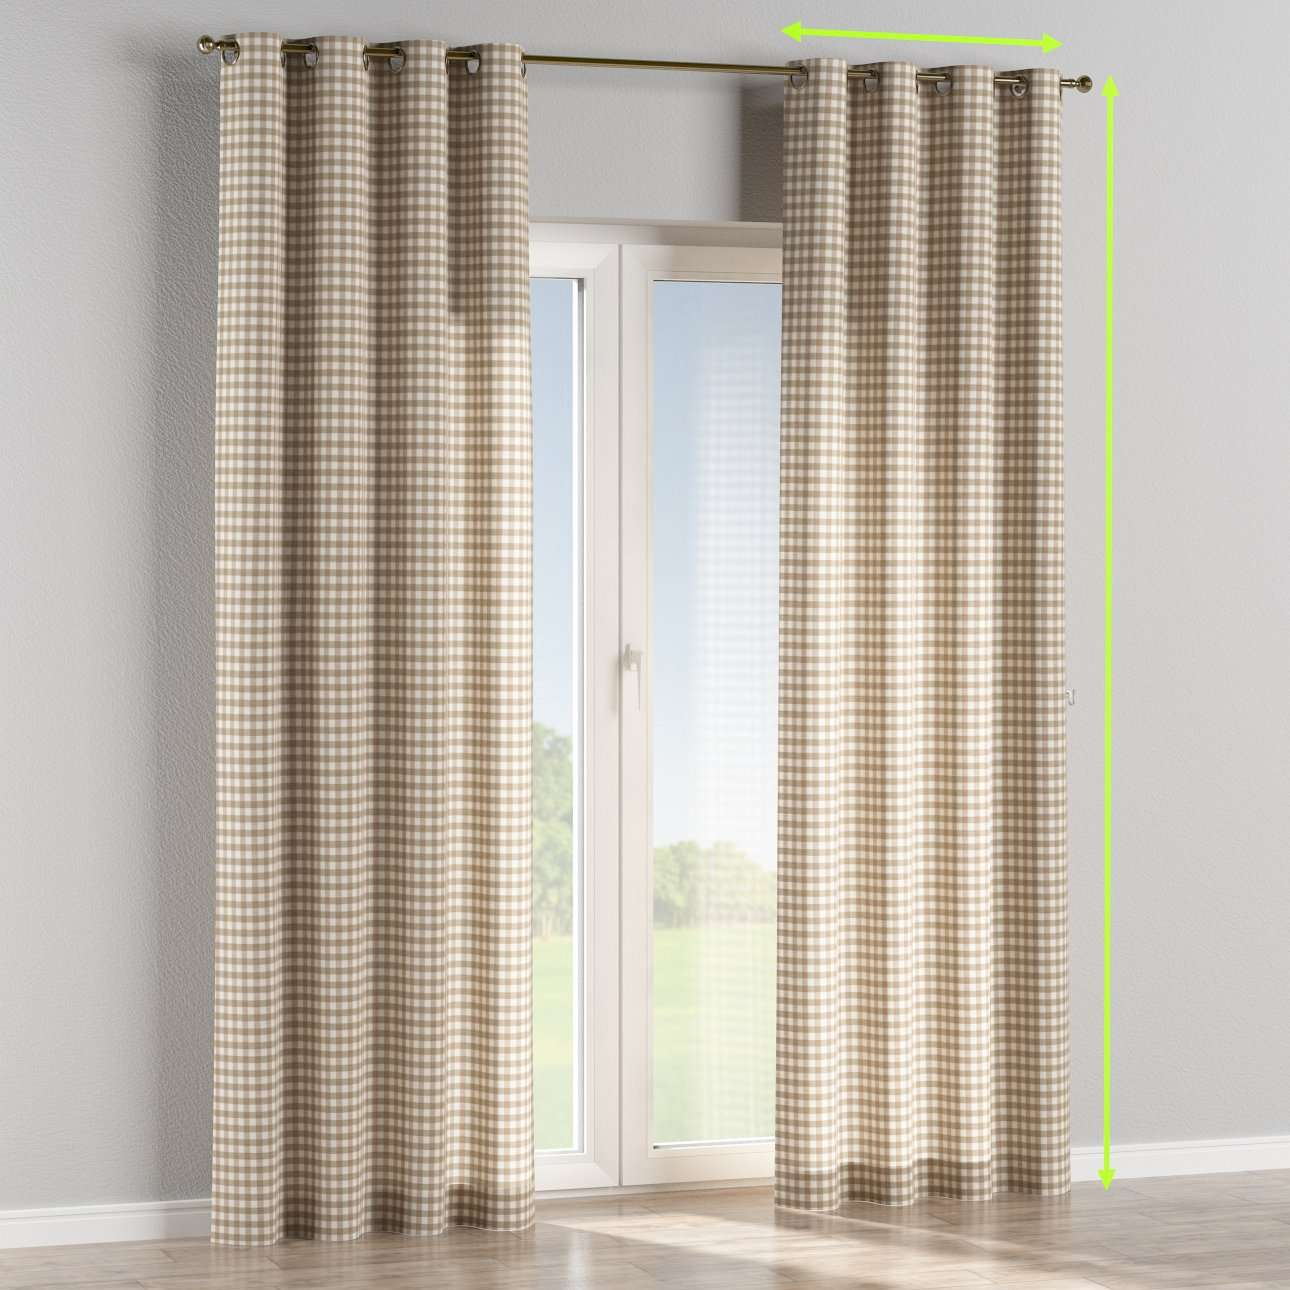 Eyelet curtains in collection Quadro, fabric: 136-06